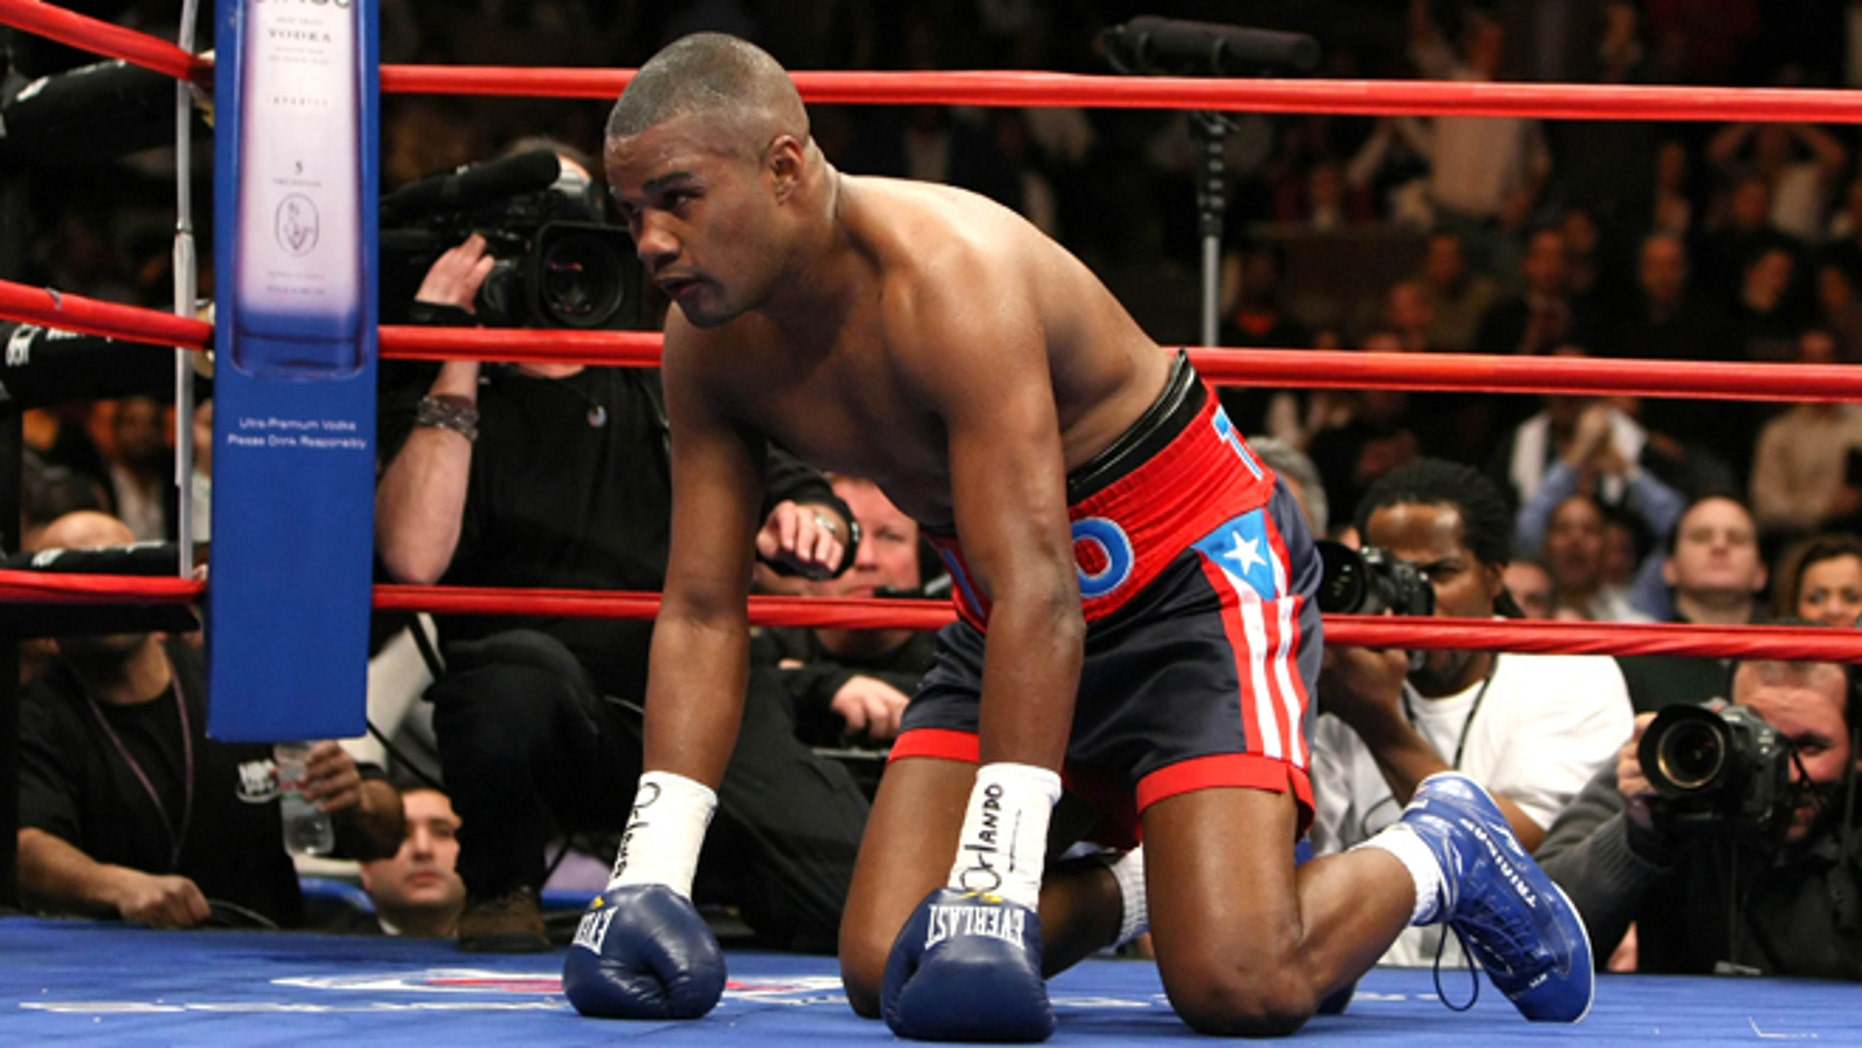 NEW YORK - JANUARY 19:  Tito Trinidad kneels on the canvas after receiving a punch from Roy Jones Jr. during their Light Heavyweight bout at Madison Square Garden January 19, 2008 in New York City.  (Photo by Al Bello/Getty Images)